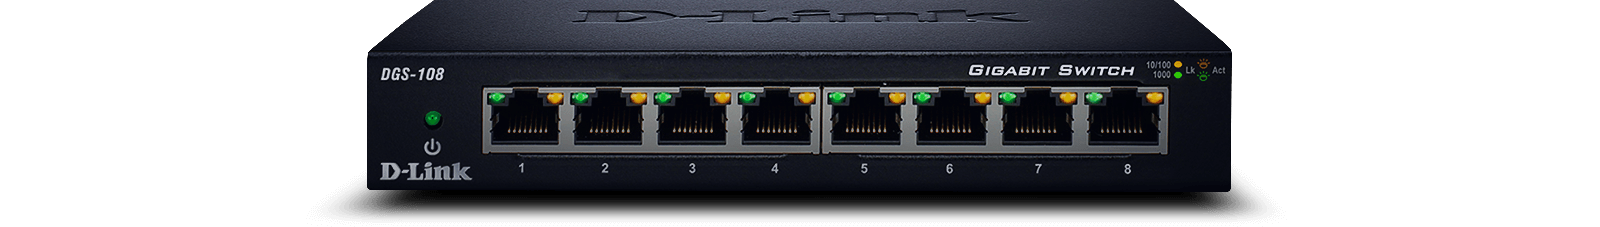 DGS-108 8‑Port Gigabit Unmanaged Desktop Switch